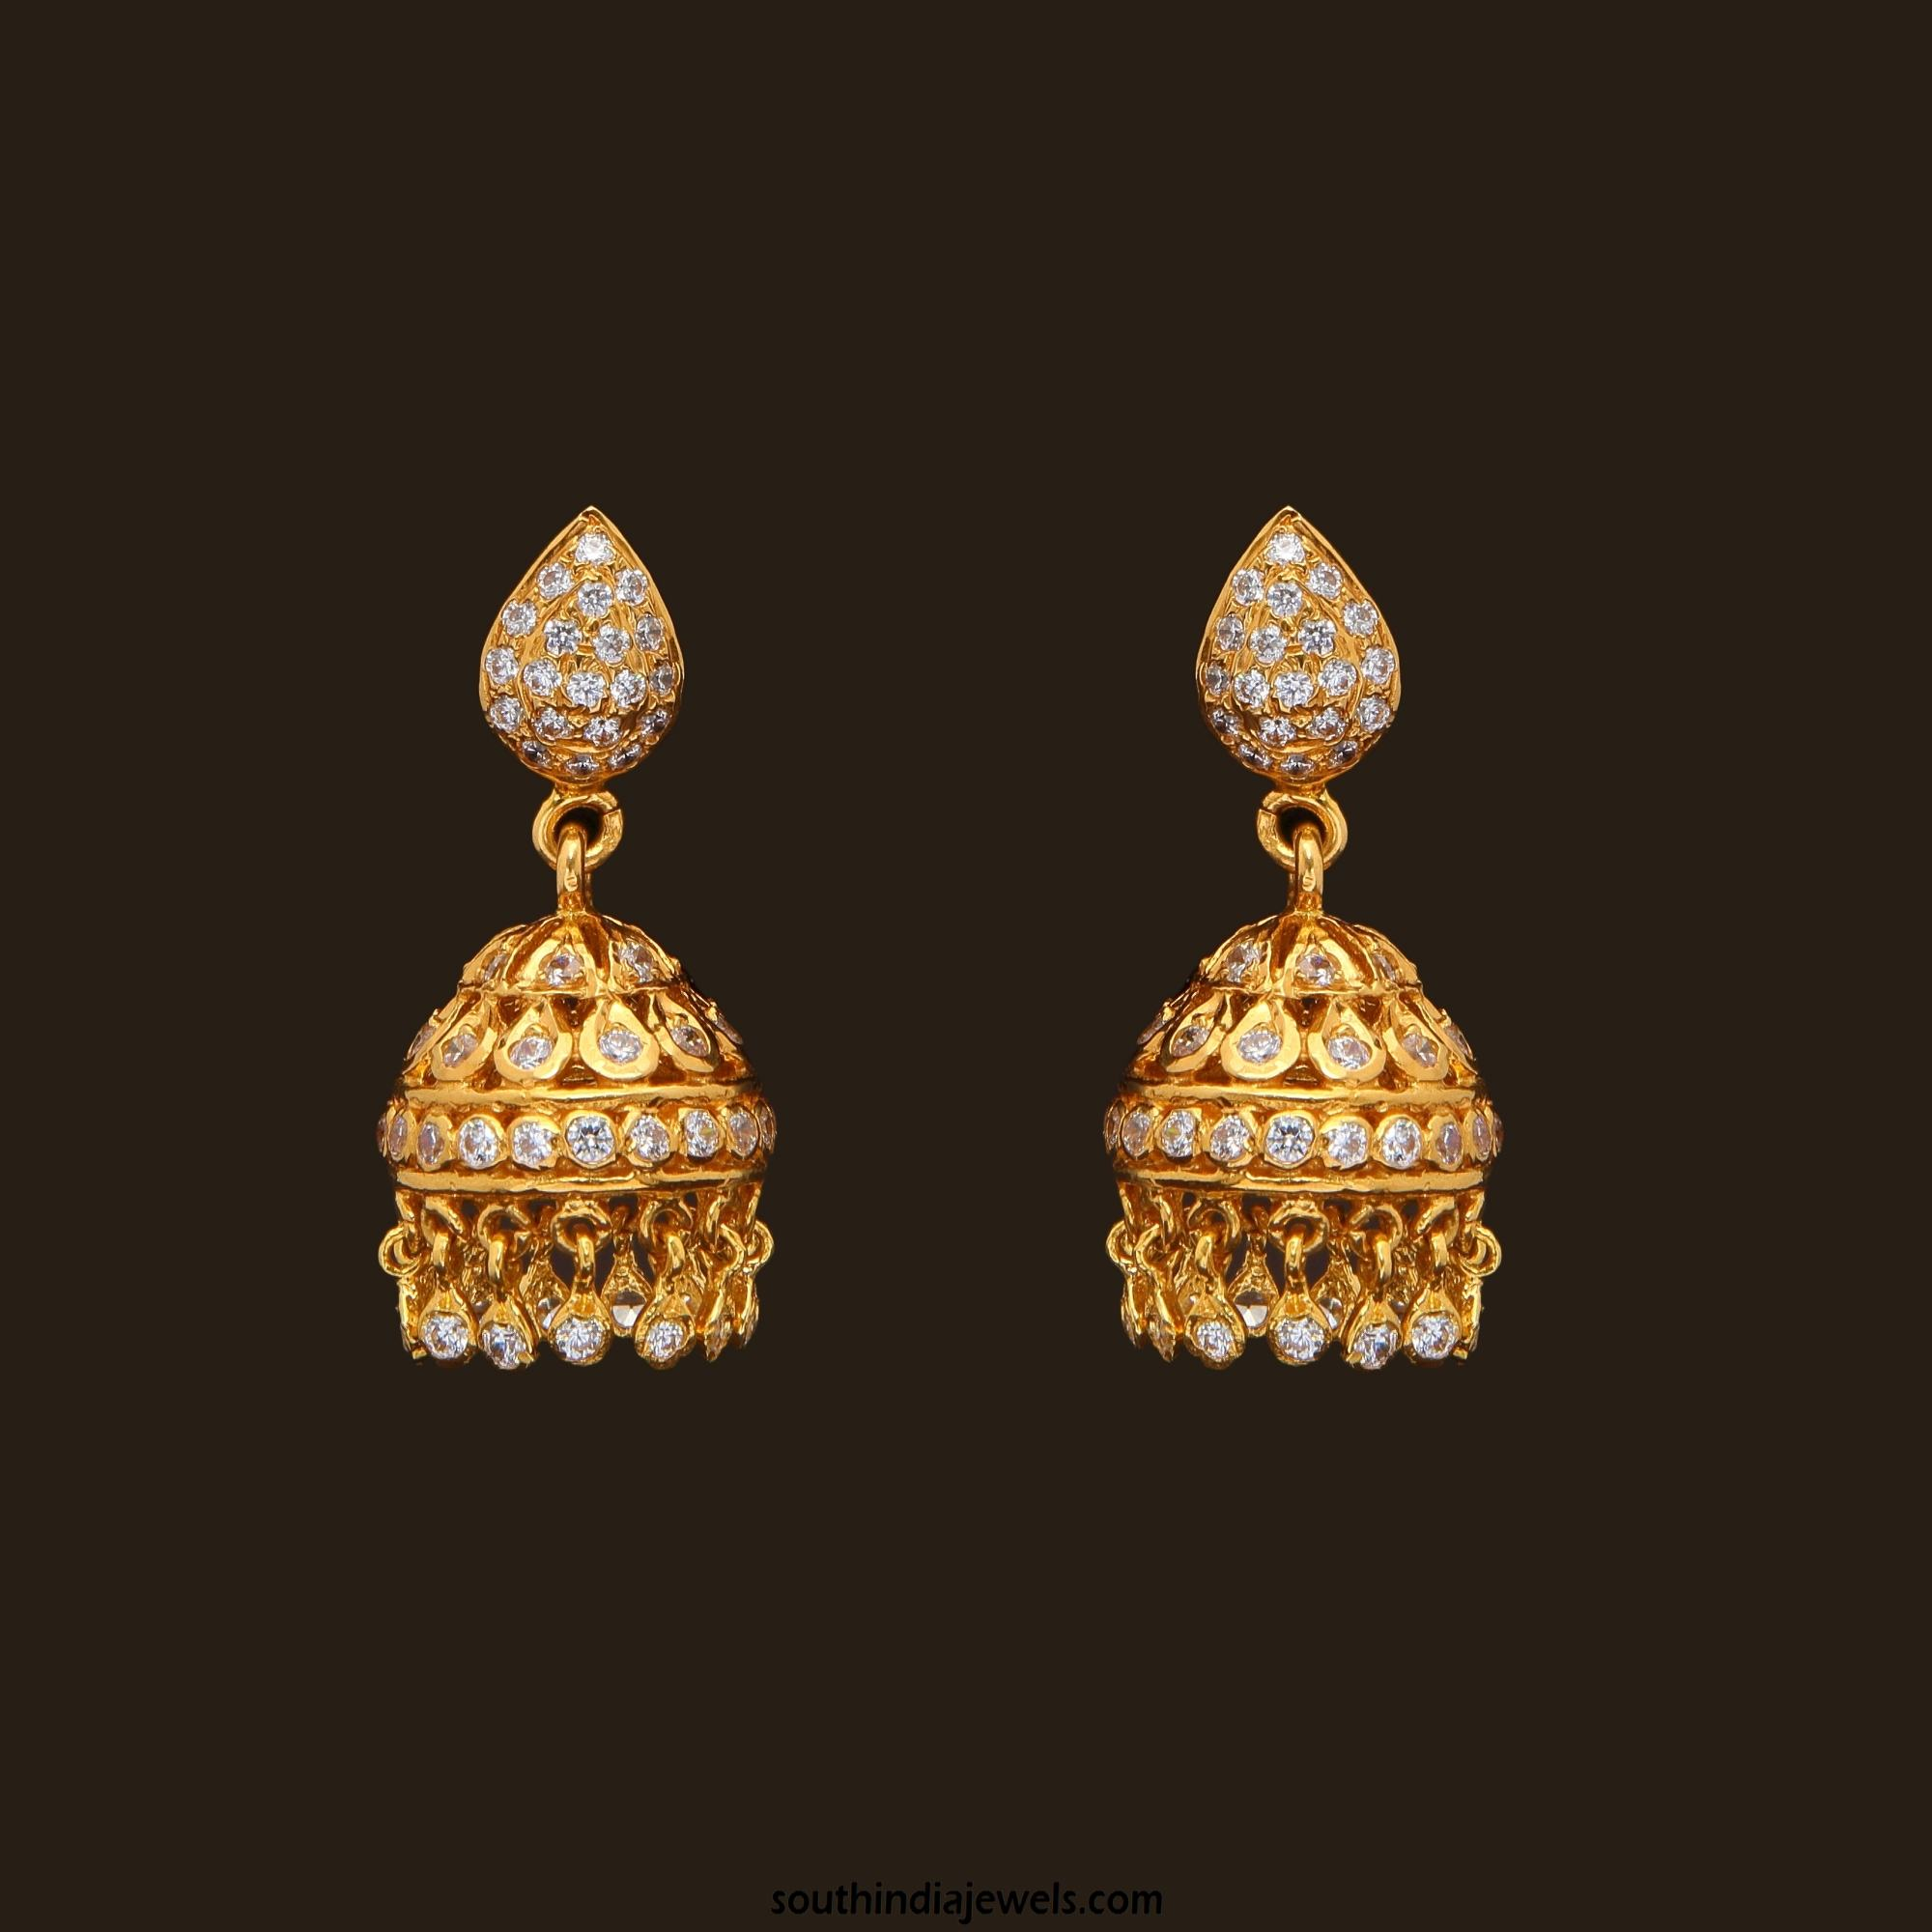 Gold Stone Jhumka From Vbj South India Jewels